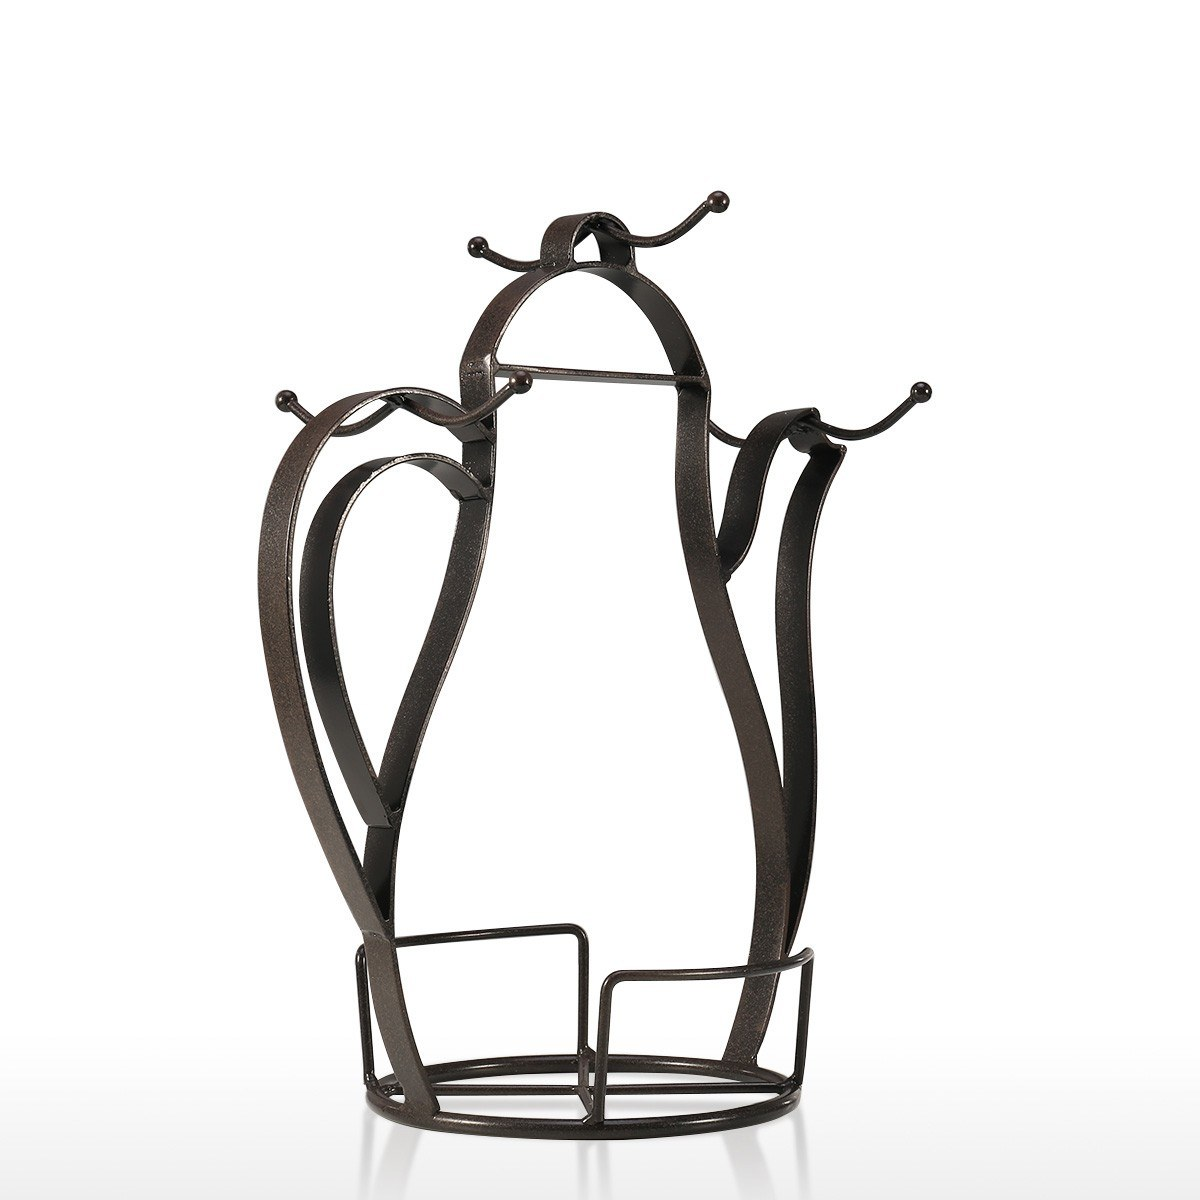 Kettle Shaped Coffee Mug Tree Holder Countertop Or Pantry Vintage Metal Wire Tree Stand For Coffee Glasses And Cups